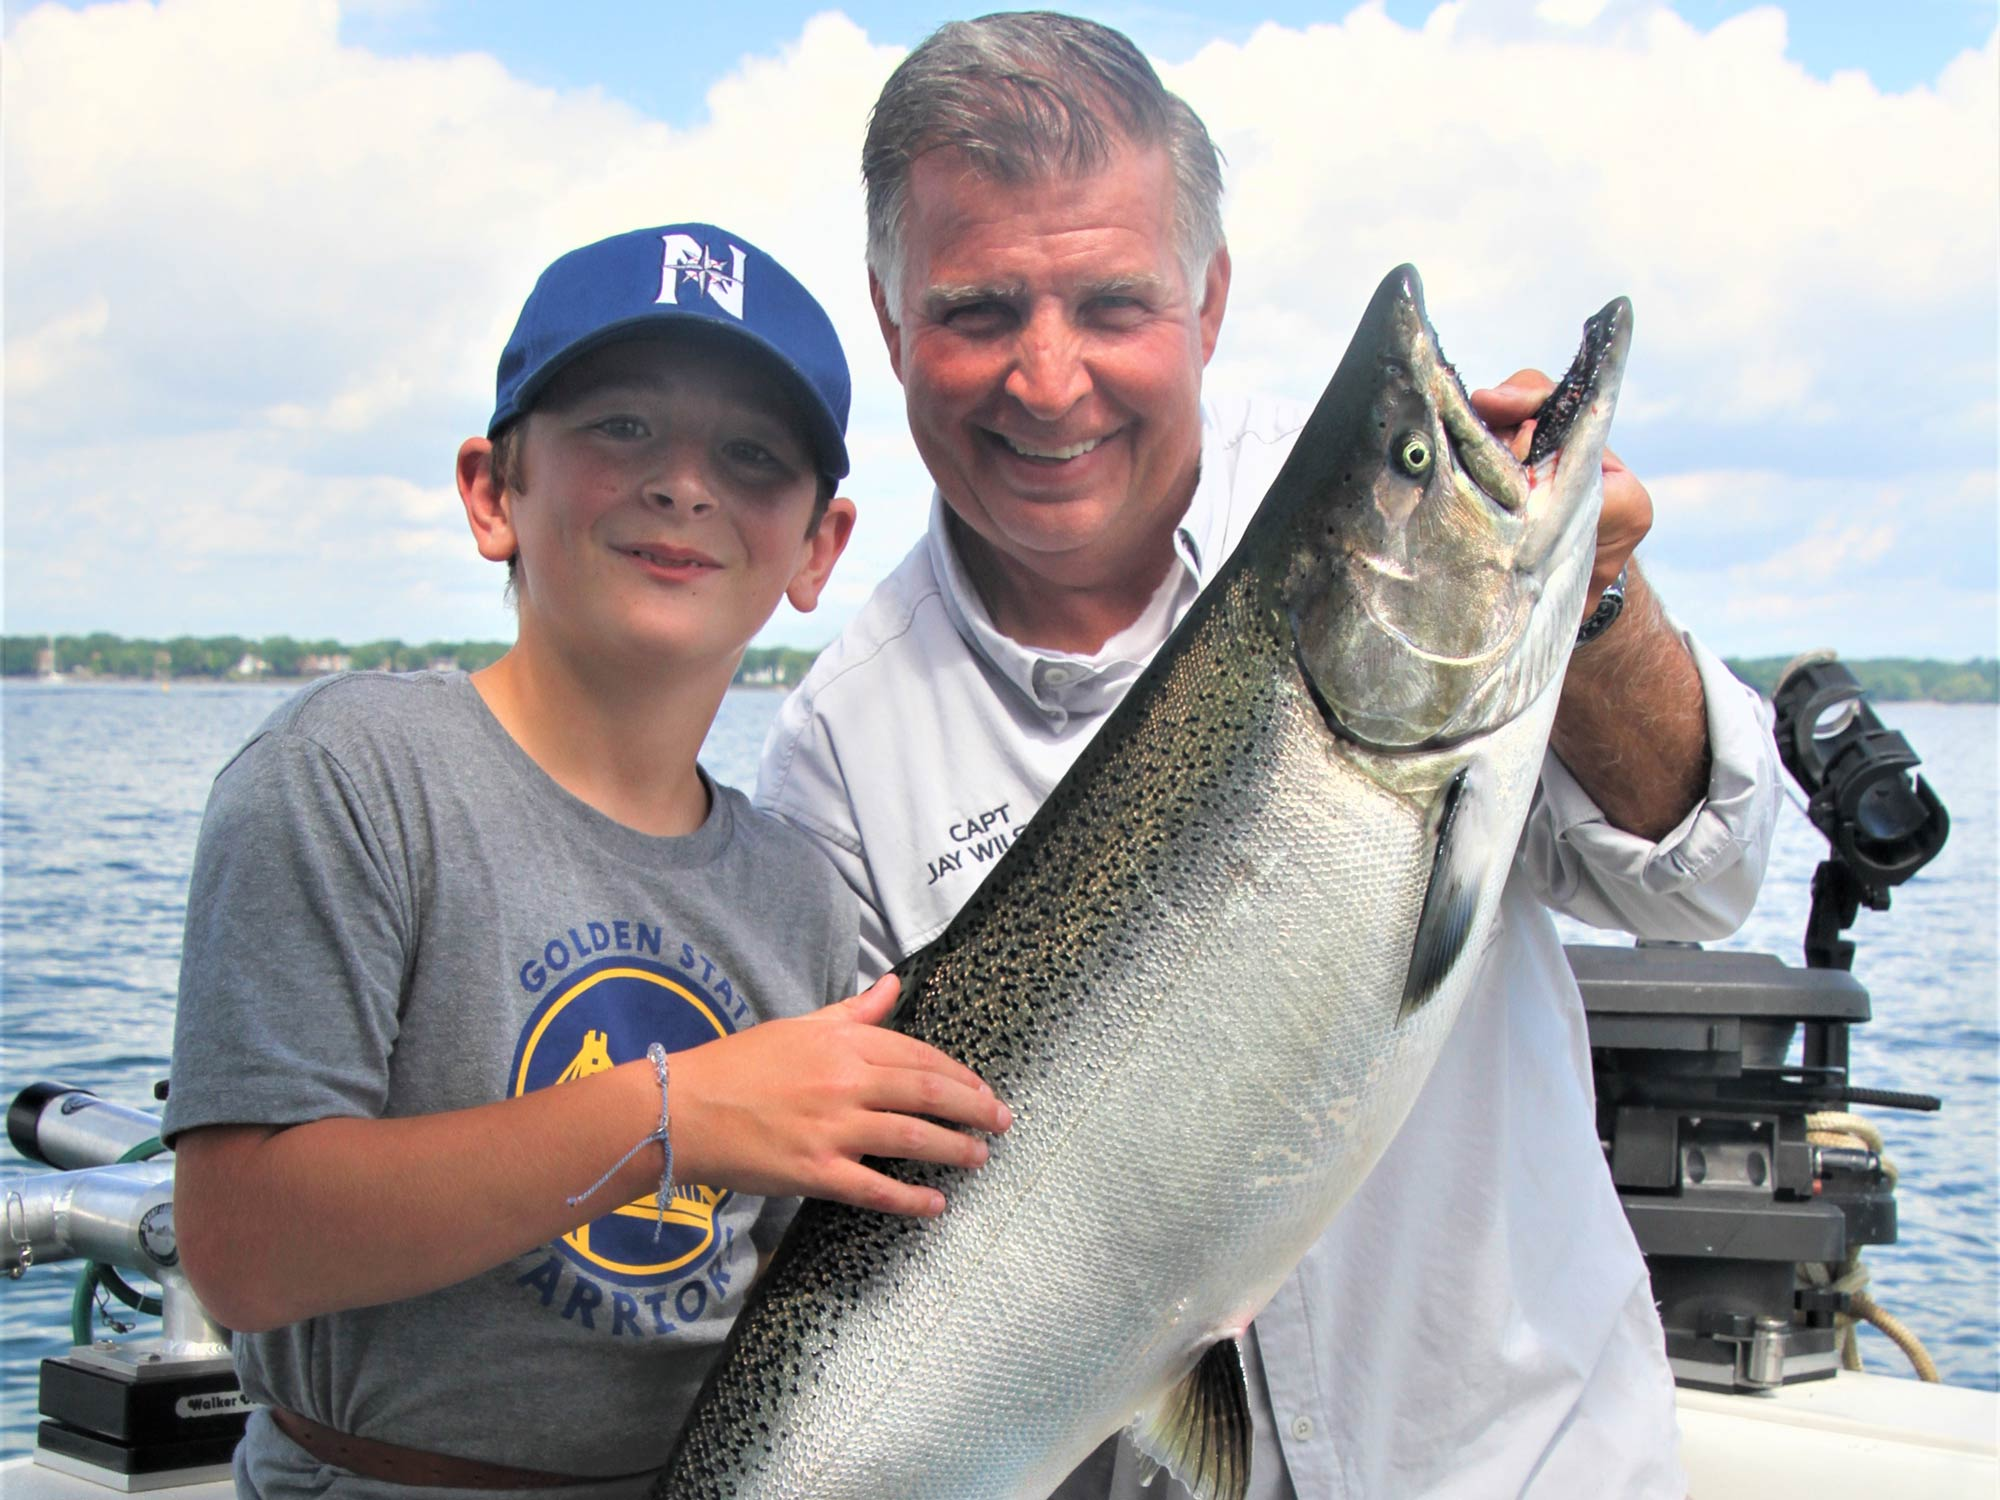 Grandfather and grandson holding a big Chinook Salmon with water and blue skies in the background